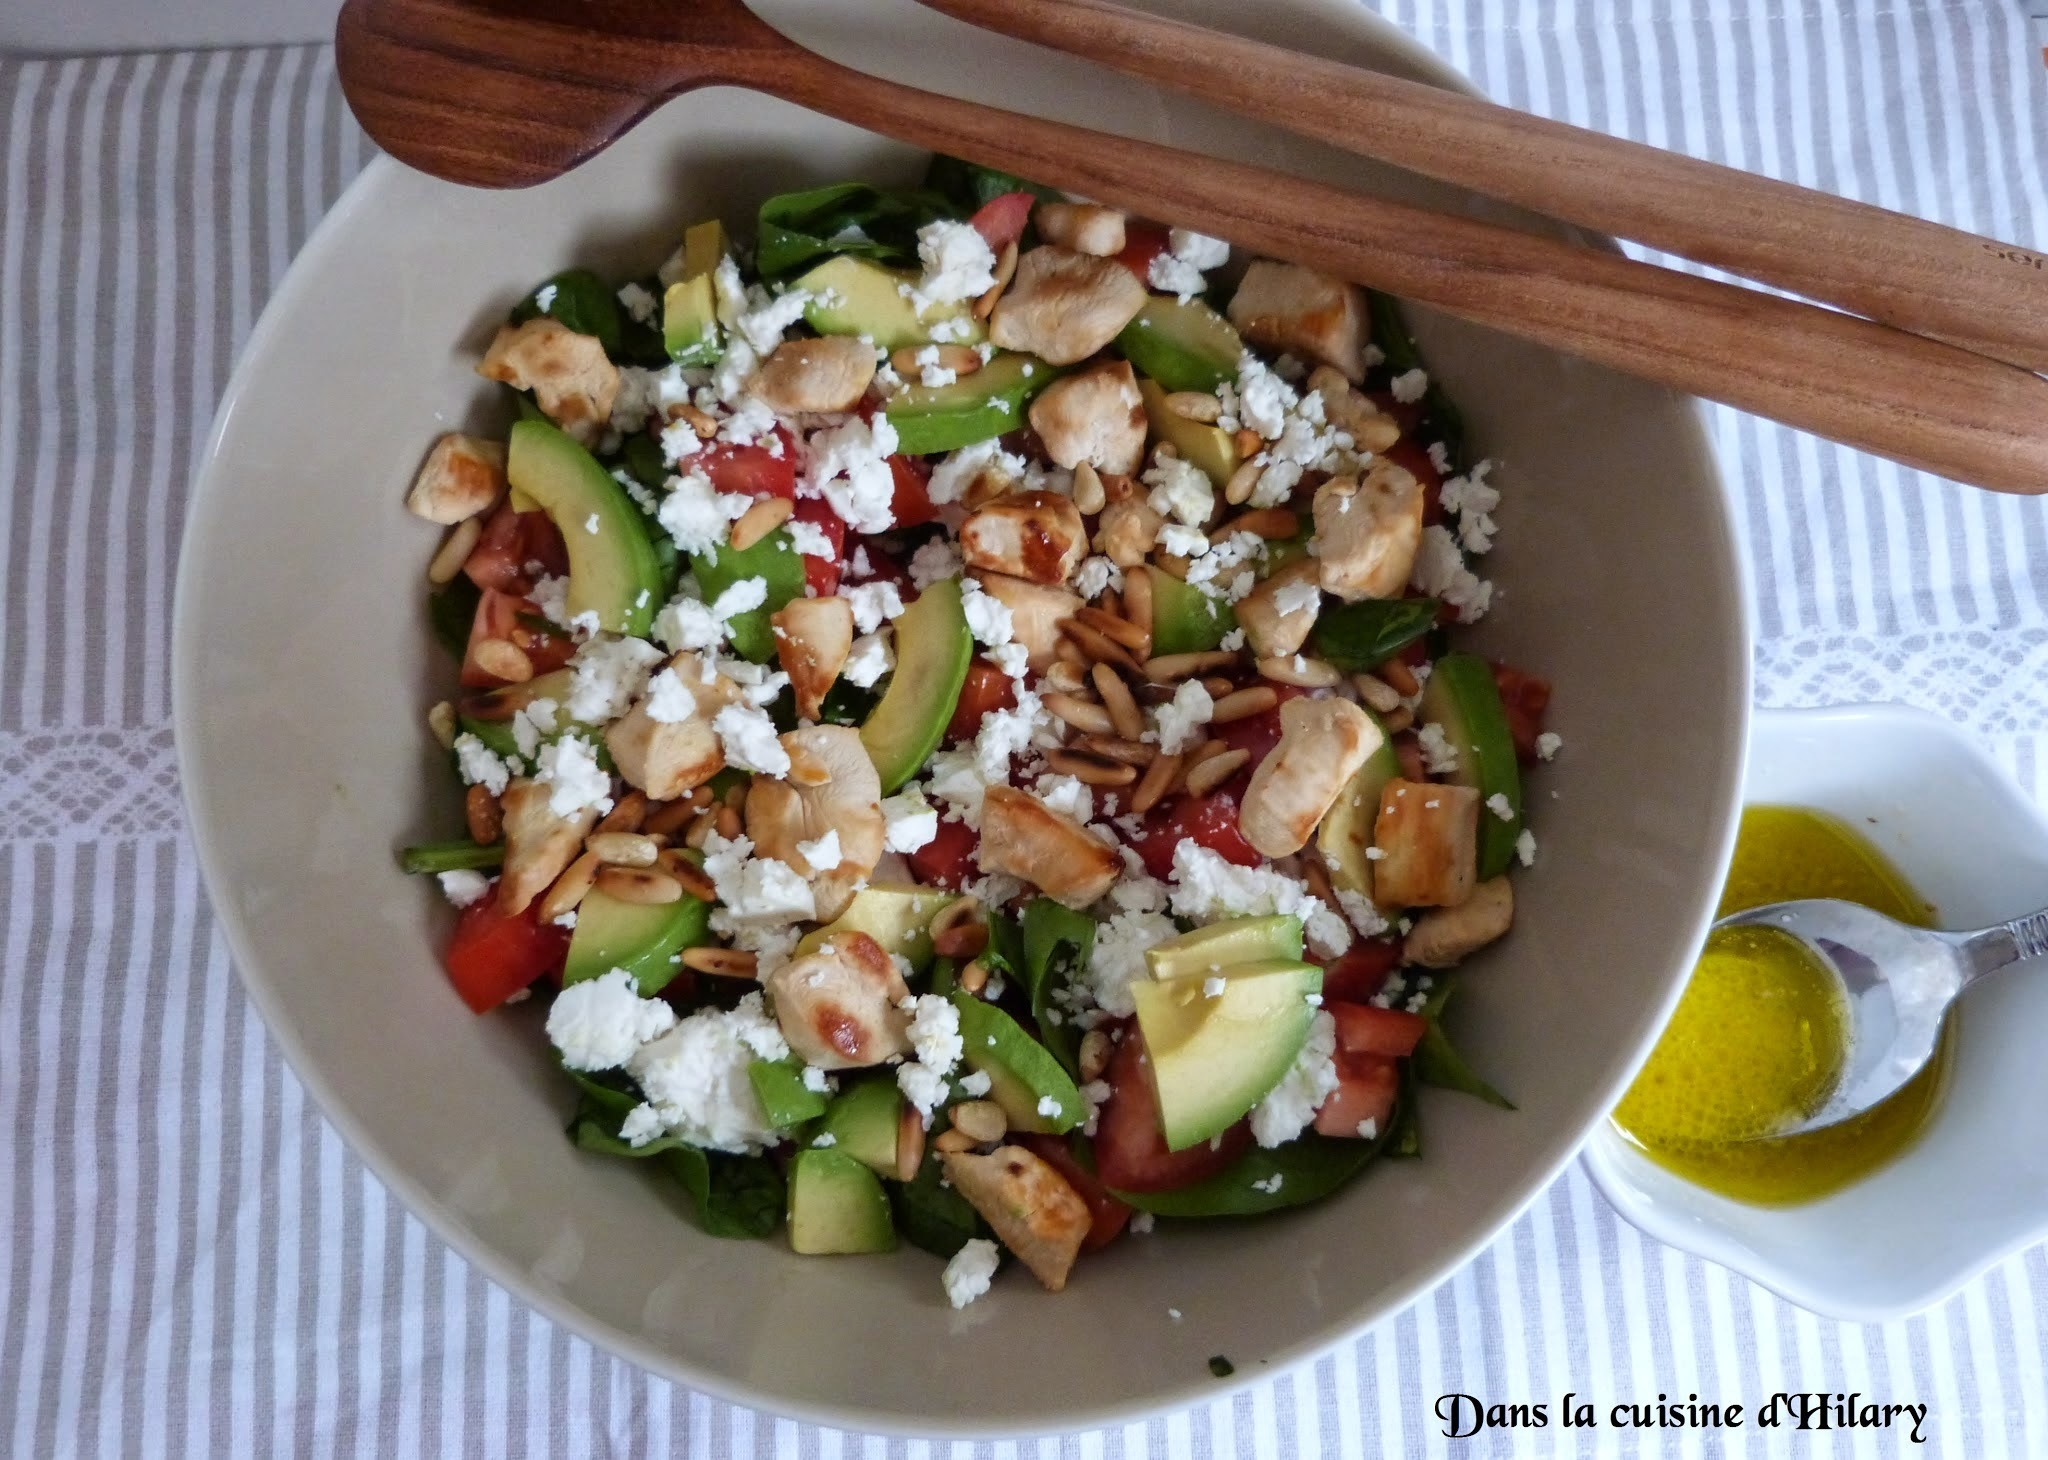 Ma power salade aux épinards, poulet, avocat et feta / My spinach, chicken, avocado and Feta cheese power salad